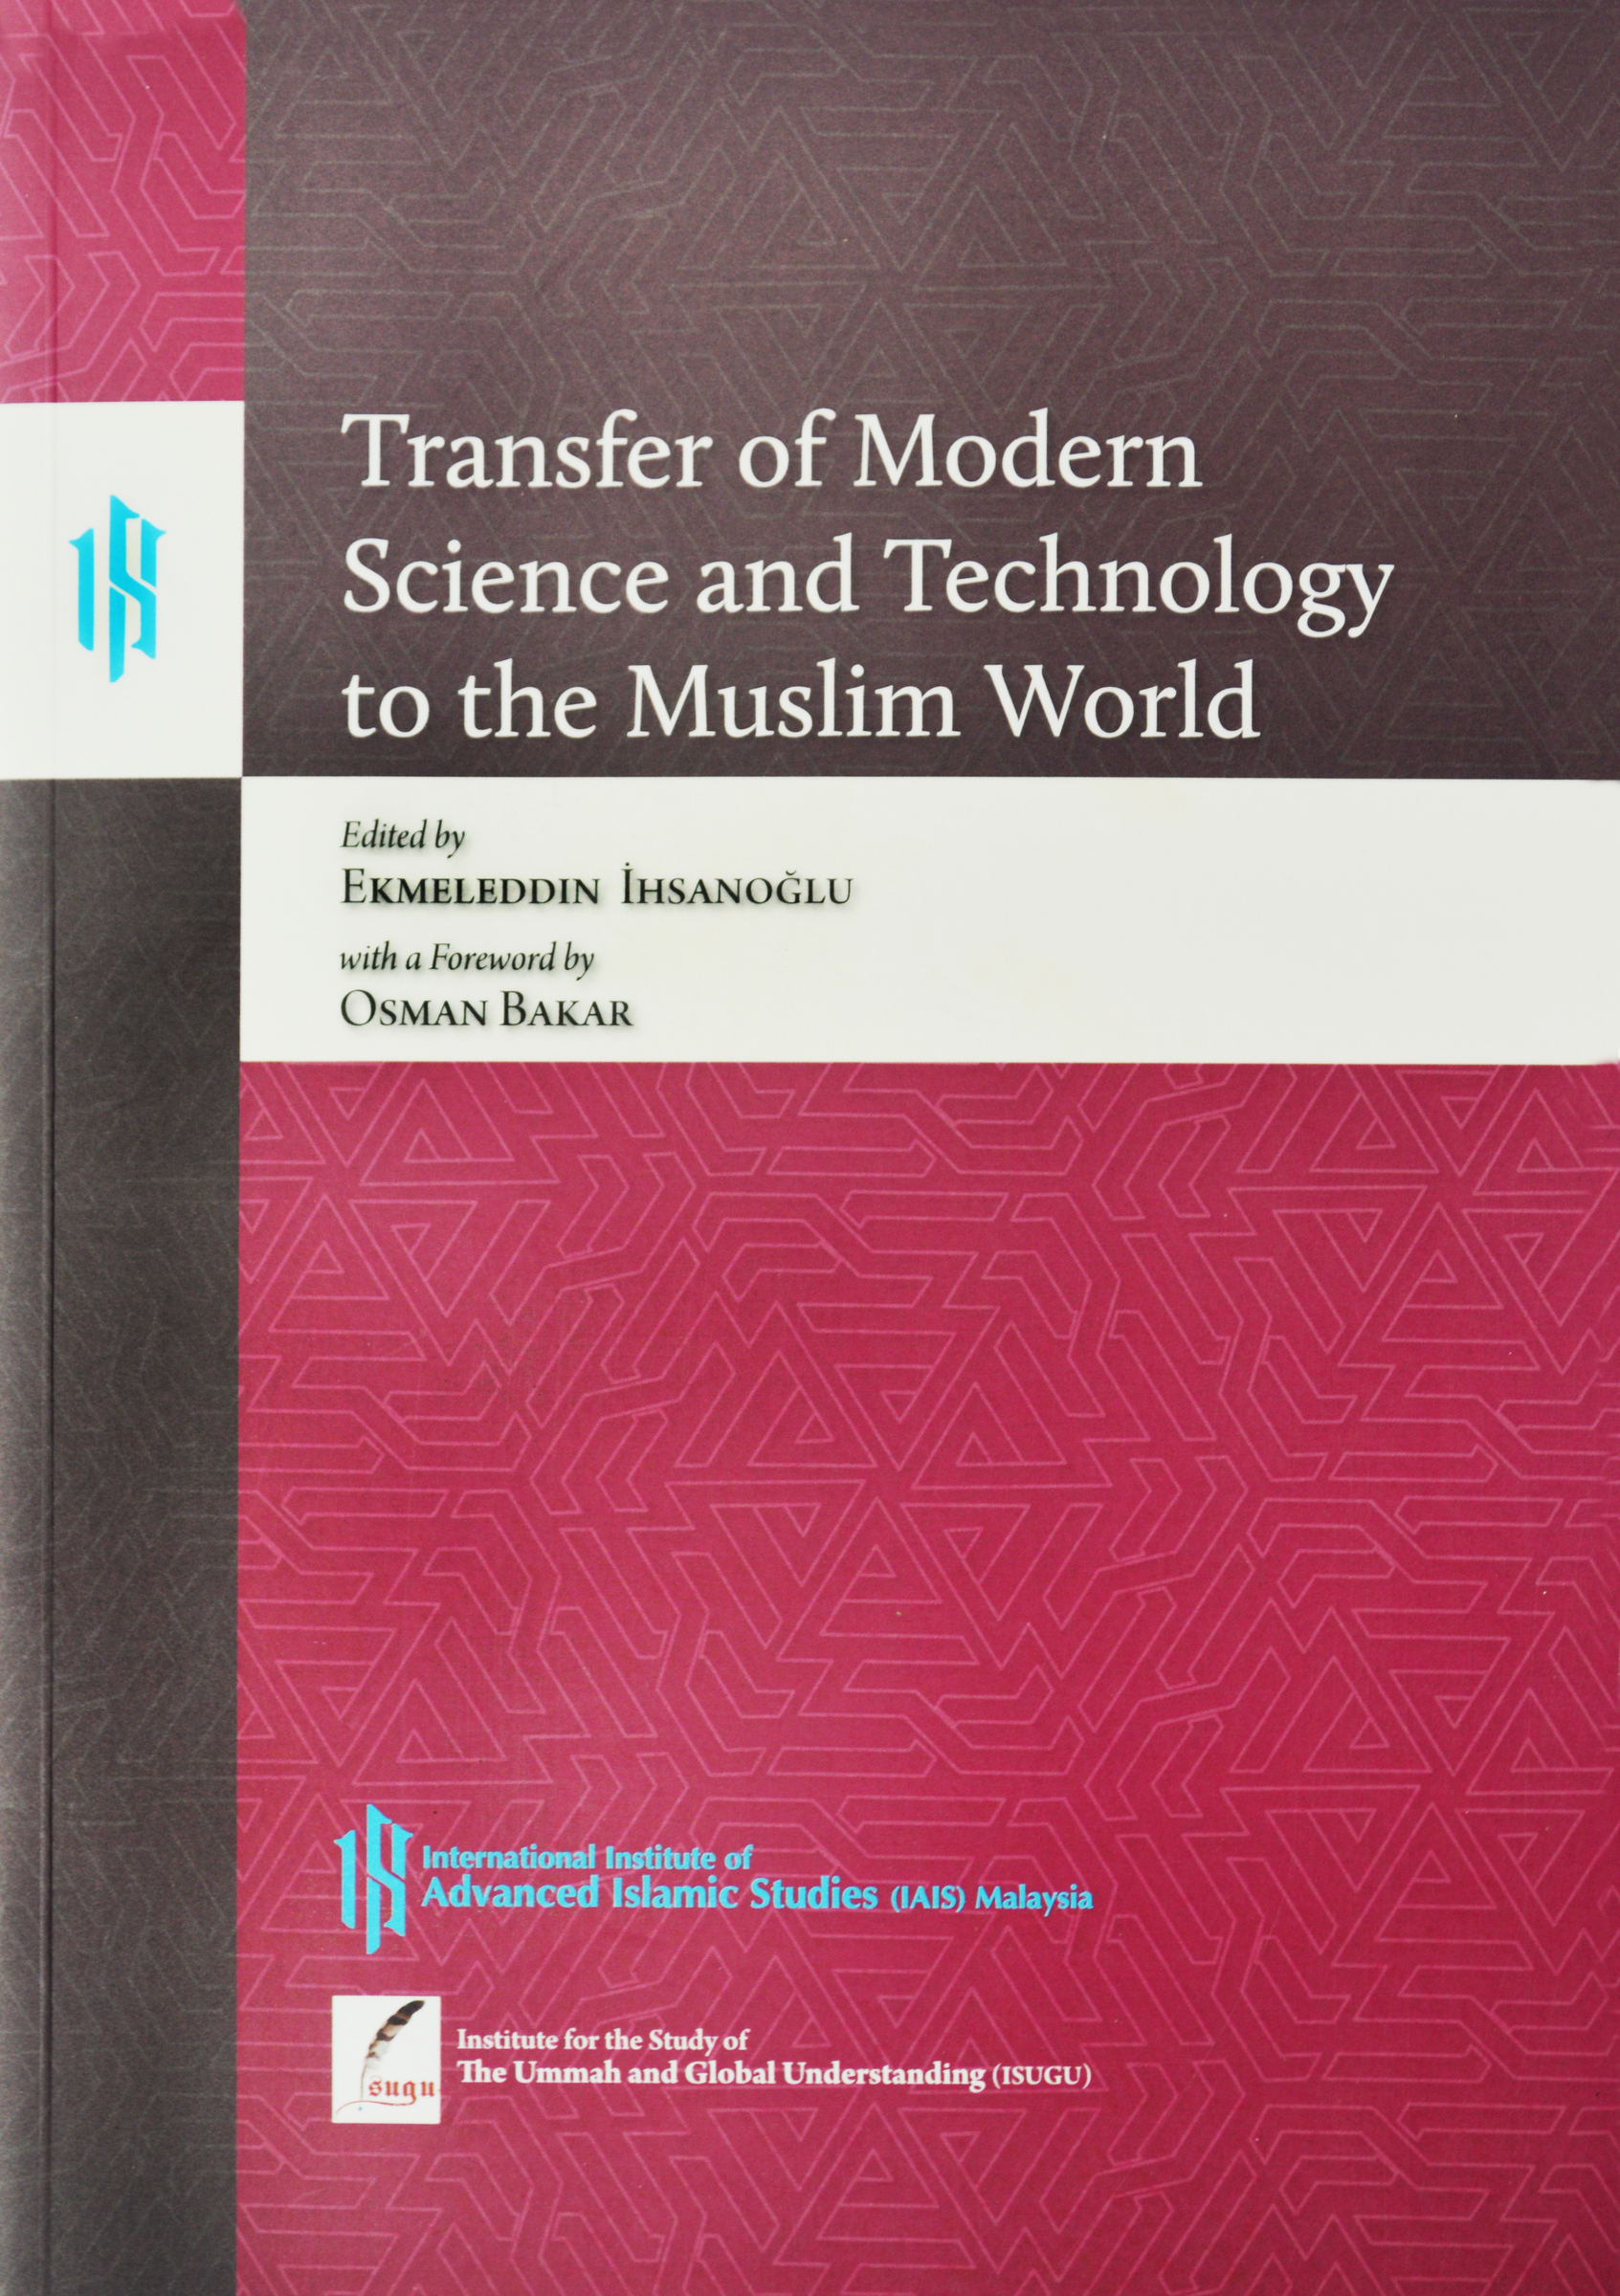 Transfer of Modern Science and Technology to the Muslim World.jpg